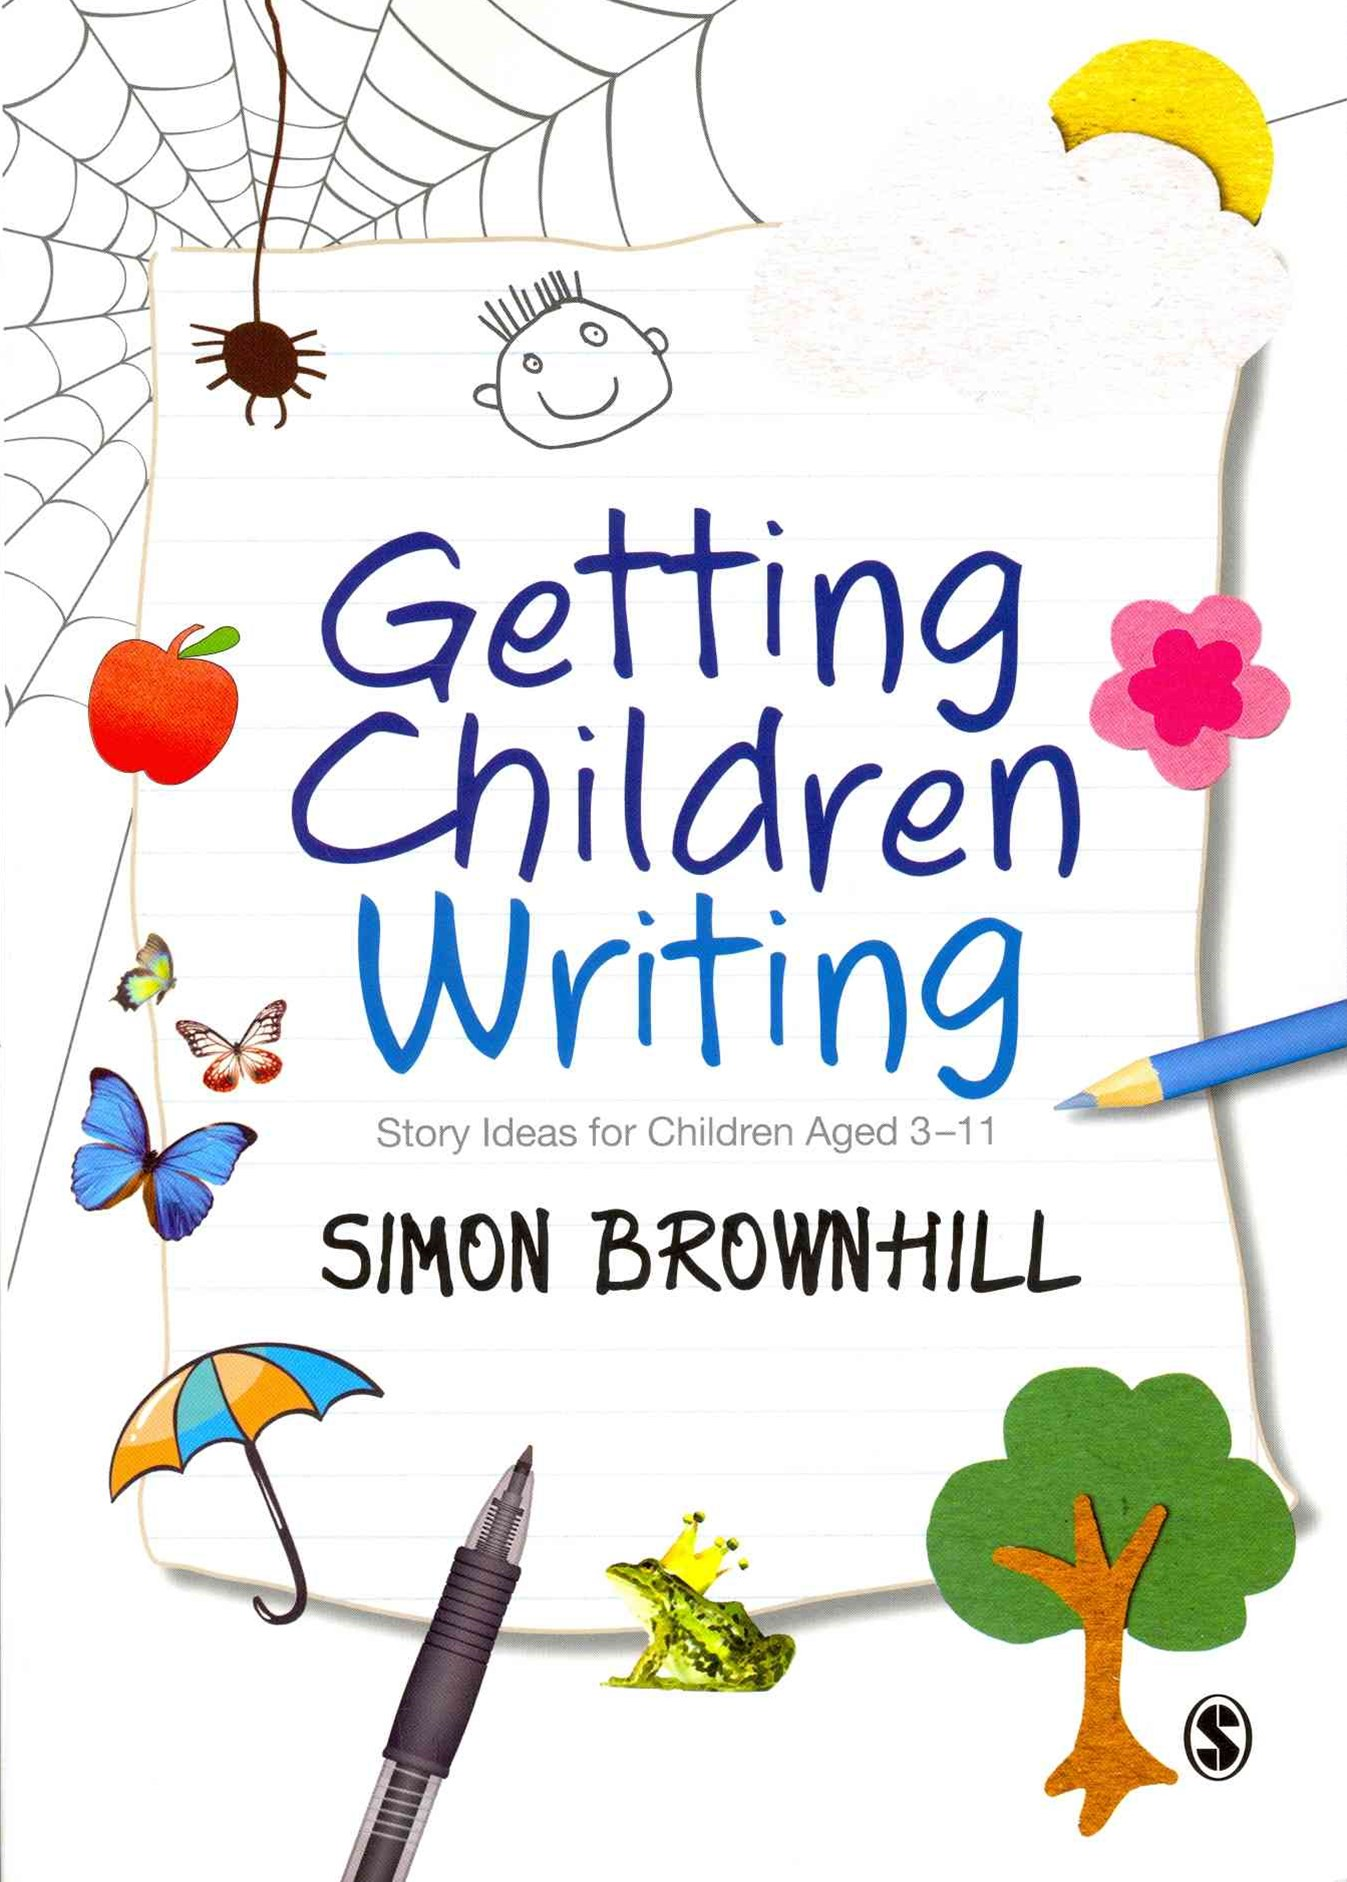 Getting Children Writing